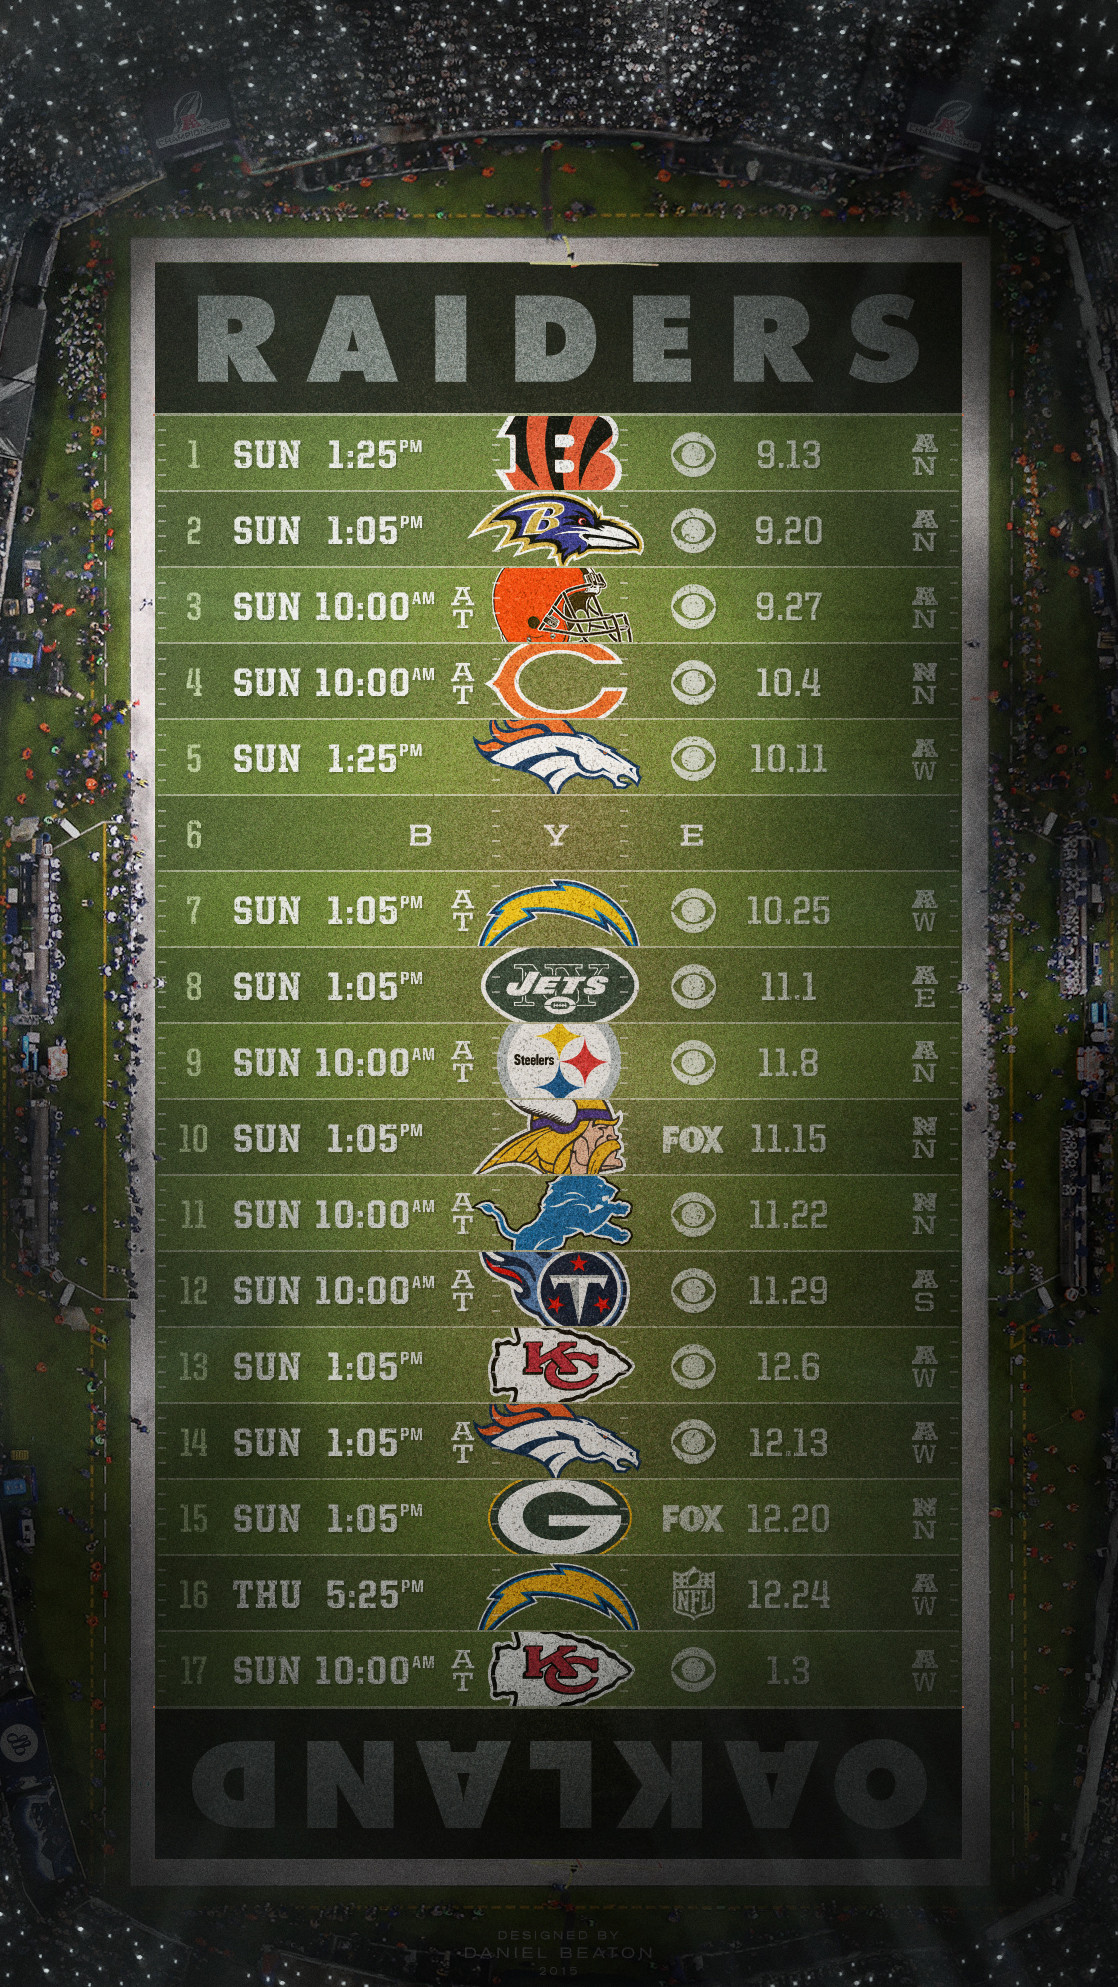 1118x1987 Raiders schedule wallpaper for Android, iOS and Desktop : oaklandraiders